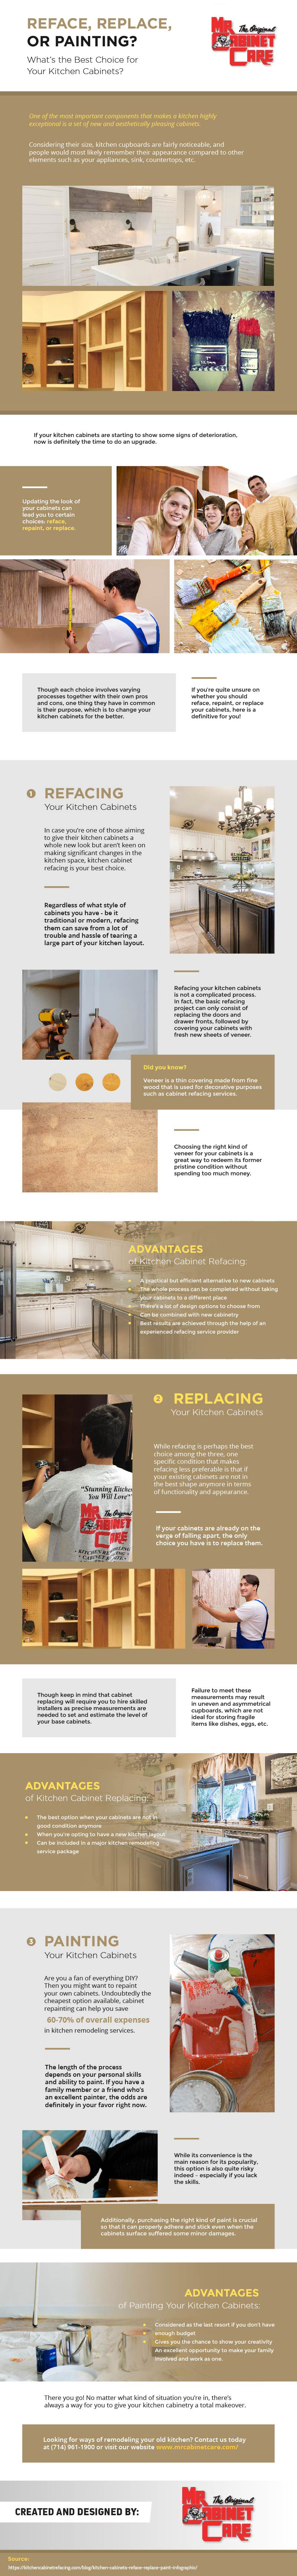 Infographic - Refacing, Replacing, or Painting? What's the Best Choice for Your Kitchen Cabinets?